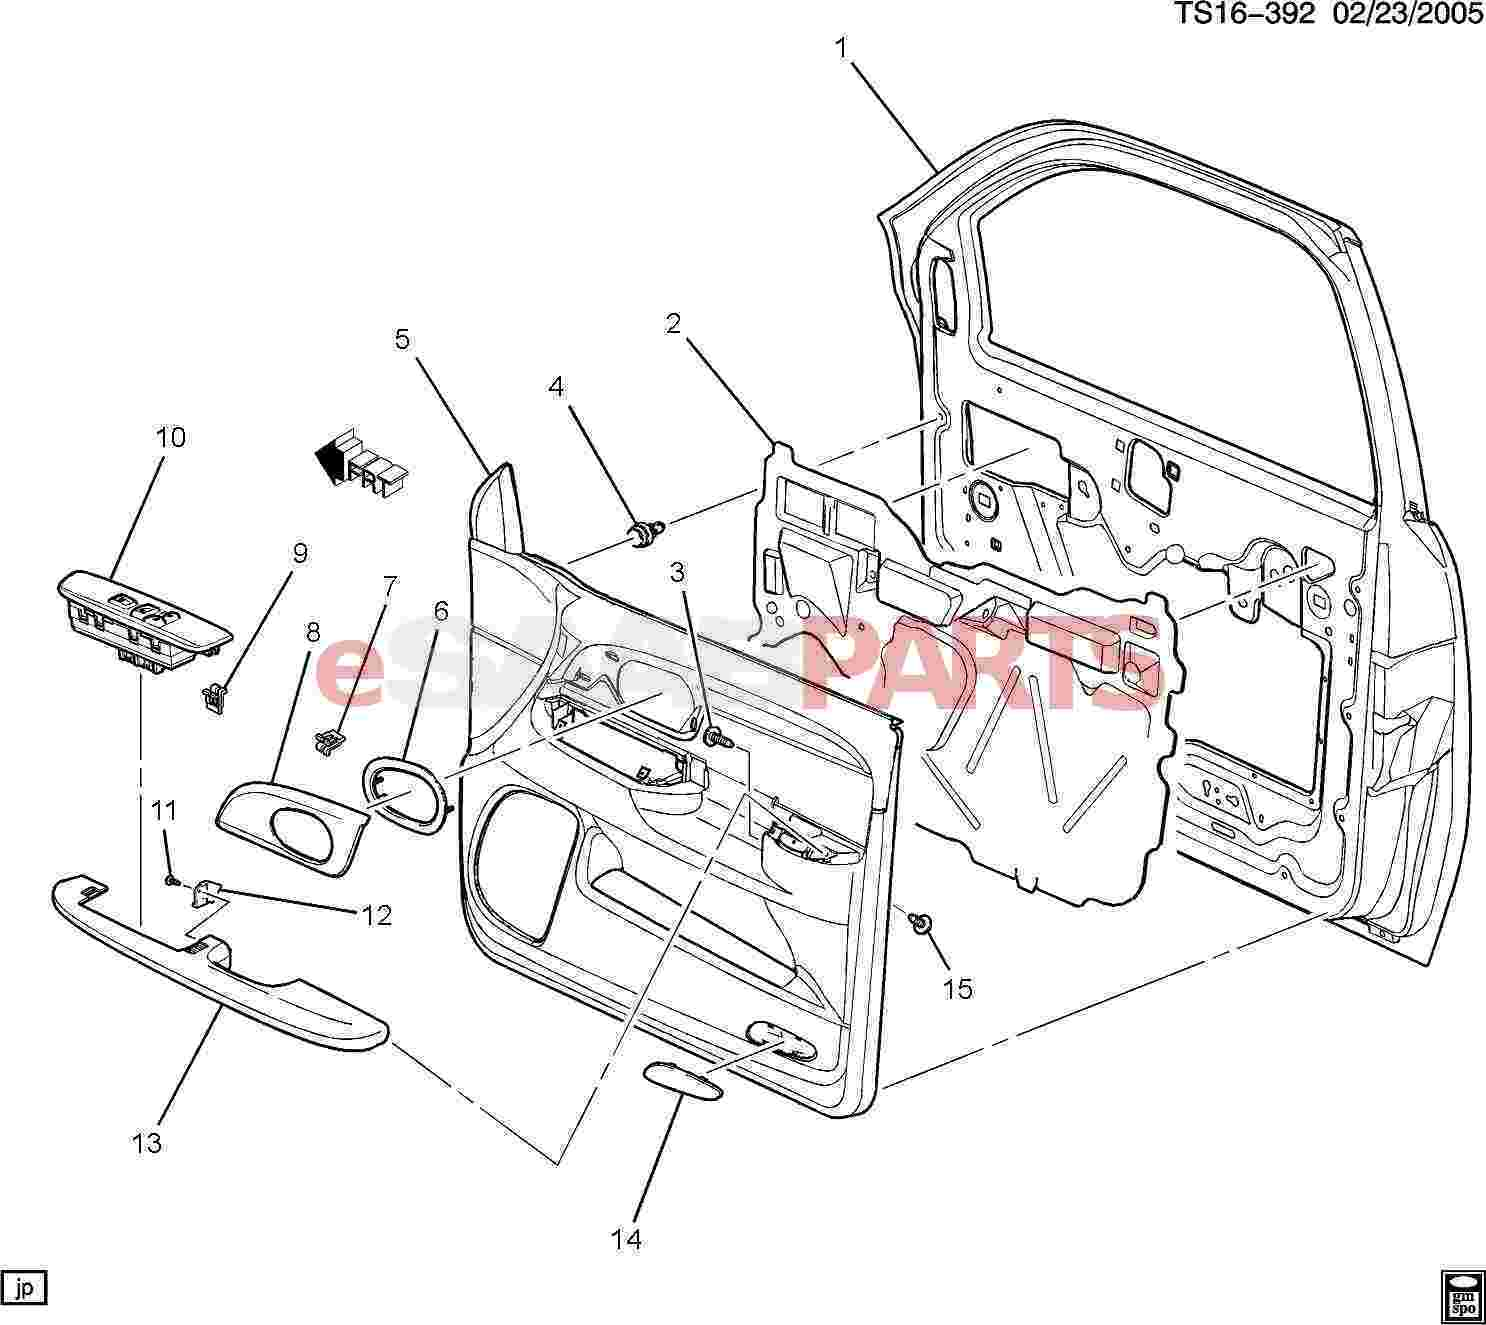 Car Door Parts Diagram on car part names and diagrams